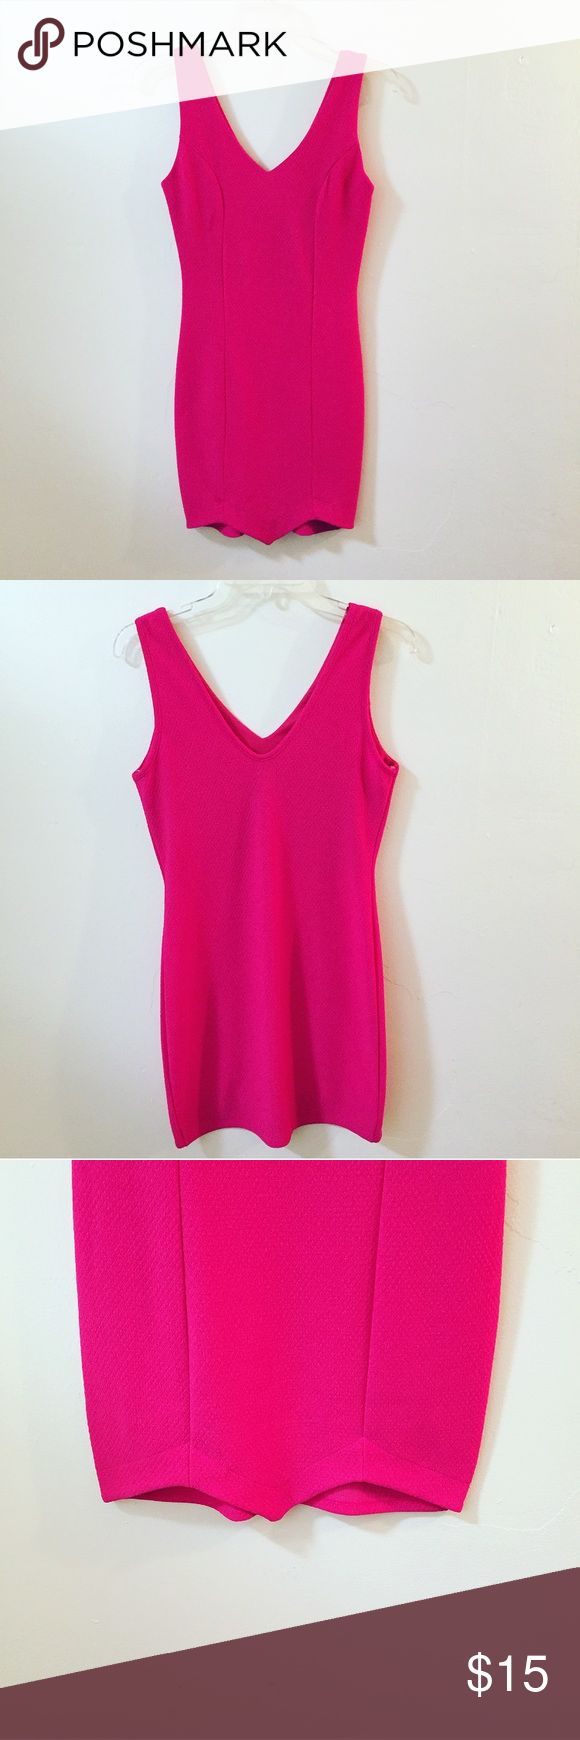 Pink Bodycon Dress Basic pink Bodycon Dress that can be worn for any occasion. Perfect for summer weddings, summer parties, summer nights, Coachella, date night, you nnammmee it! NWOT Tags: pink dress dresses Bodycon Dress large dress small dress club dress wedding Dresses Mini